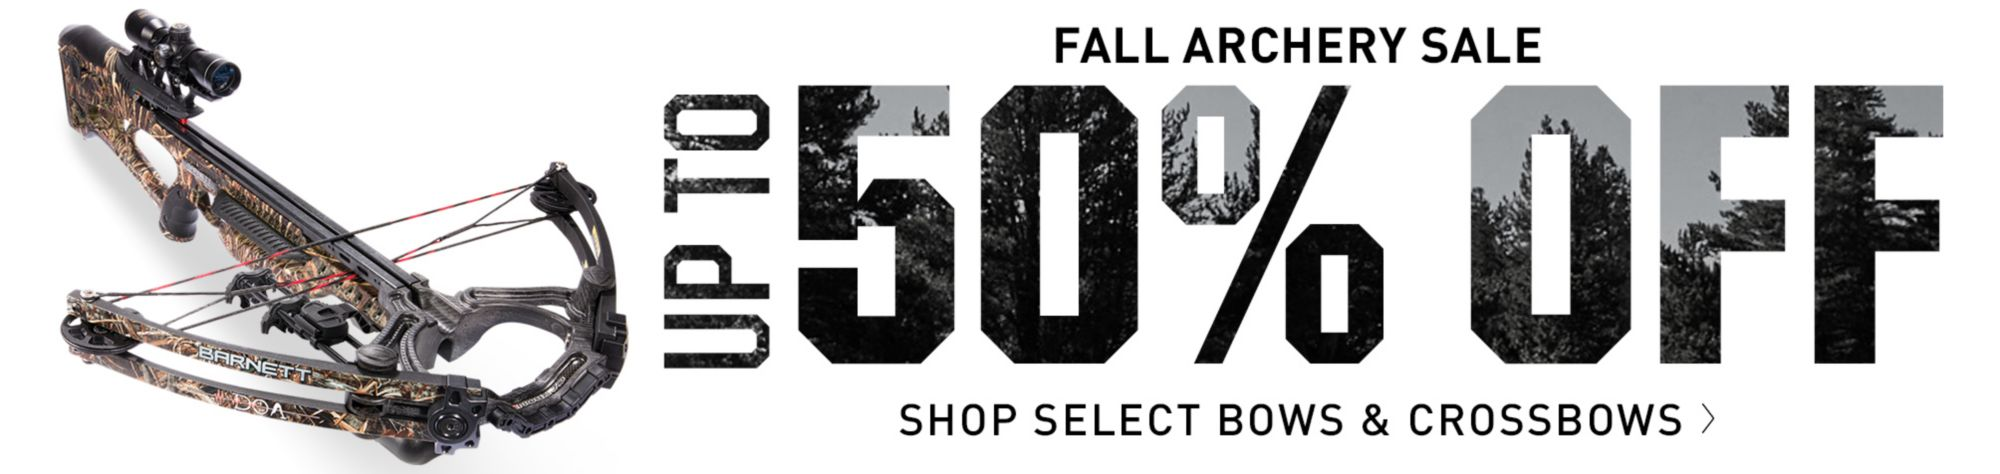 Up to 50% Off Select Bows & Crossbows